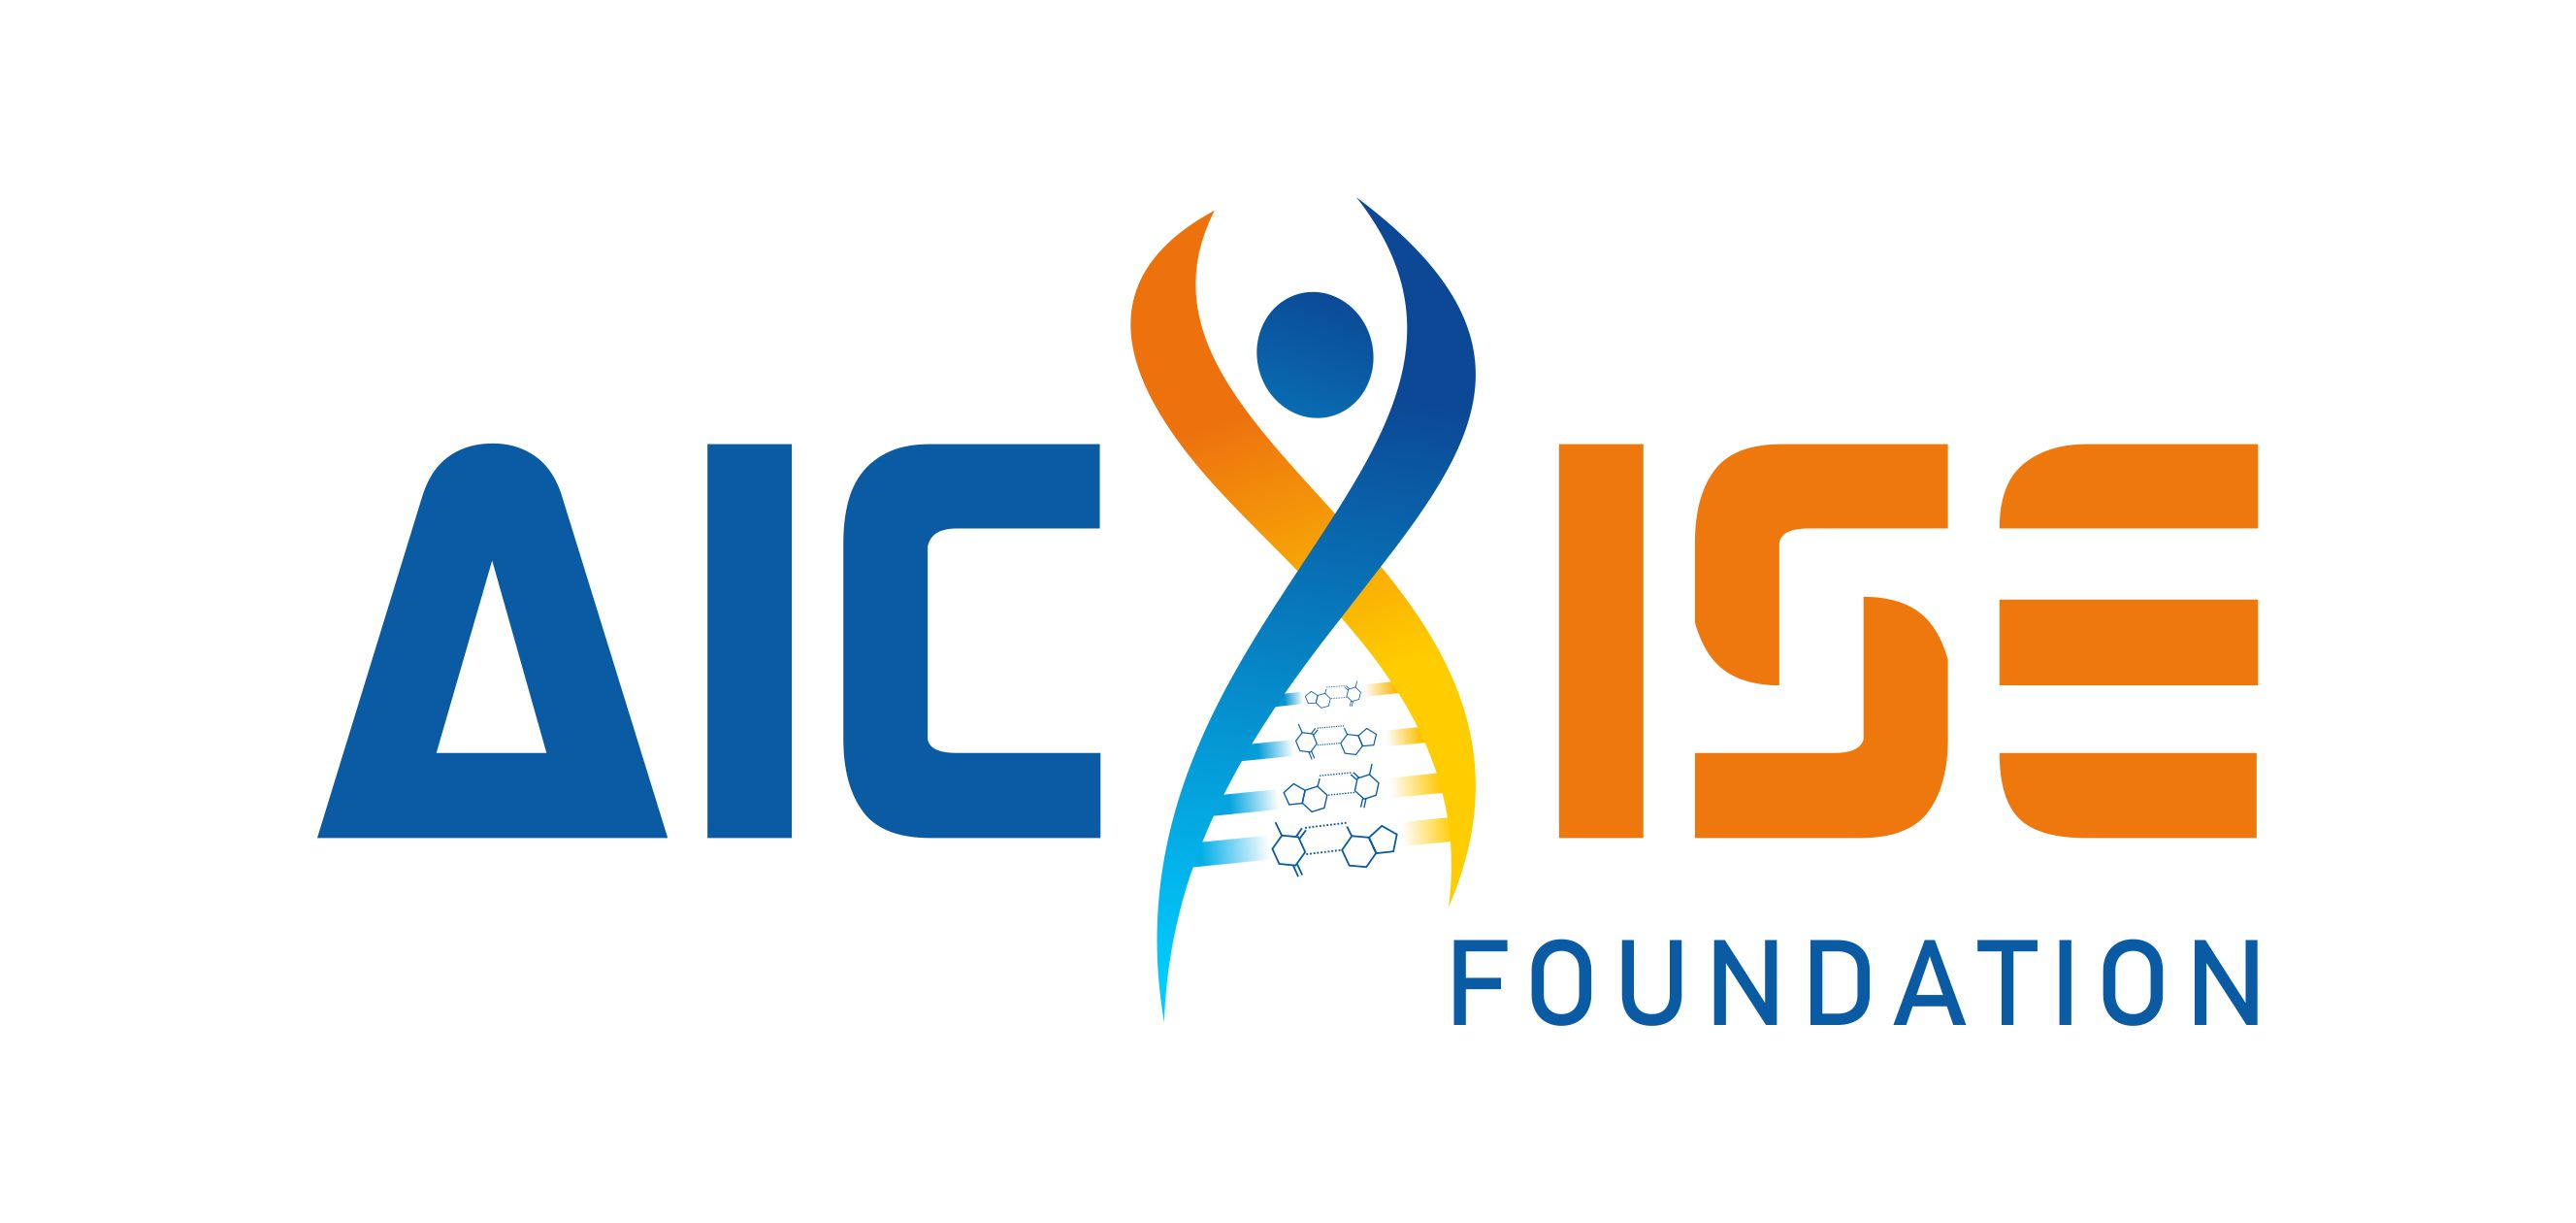 Aicise Foundation